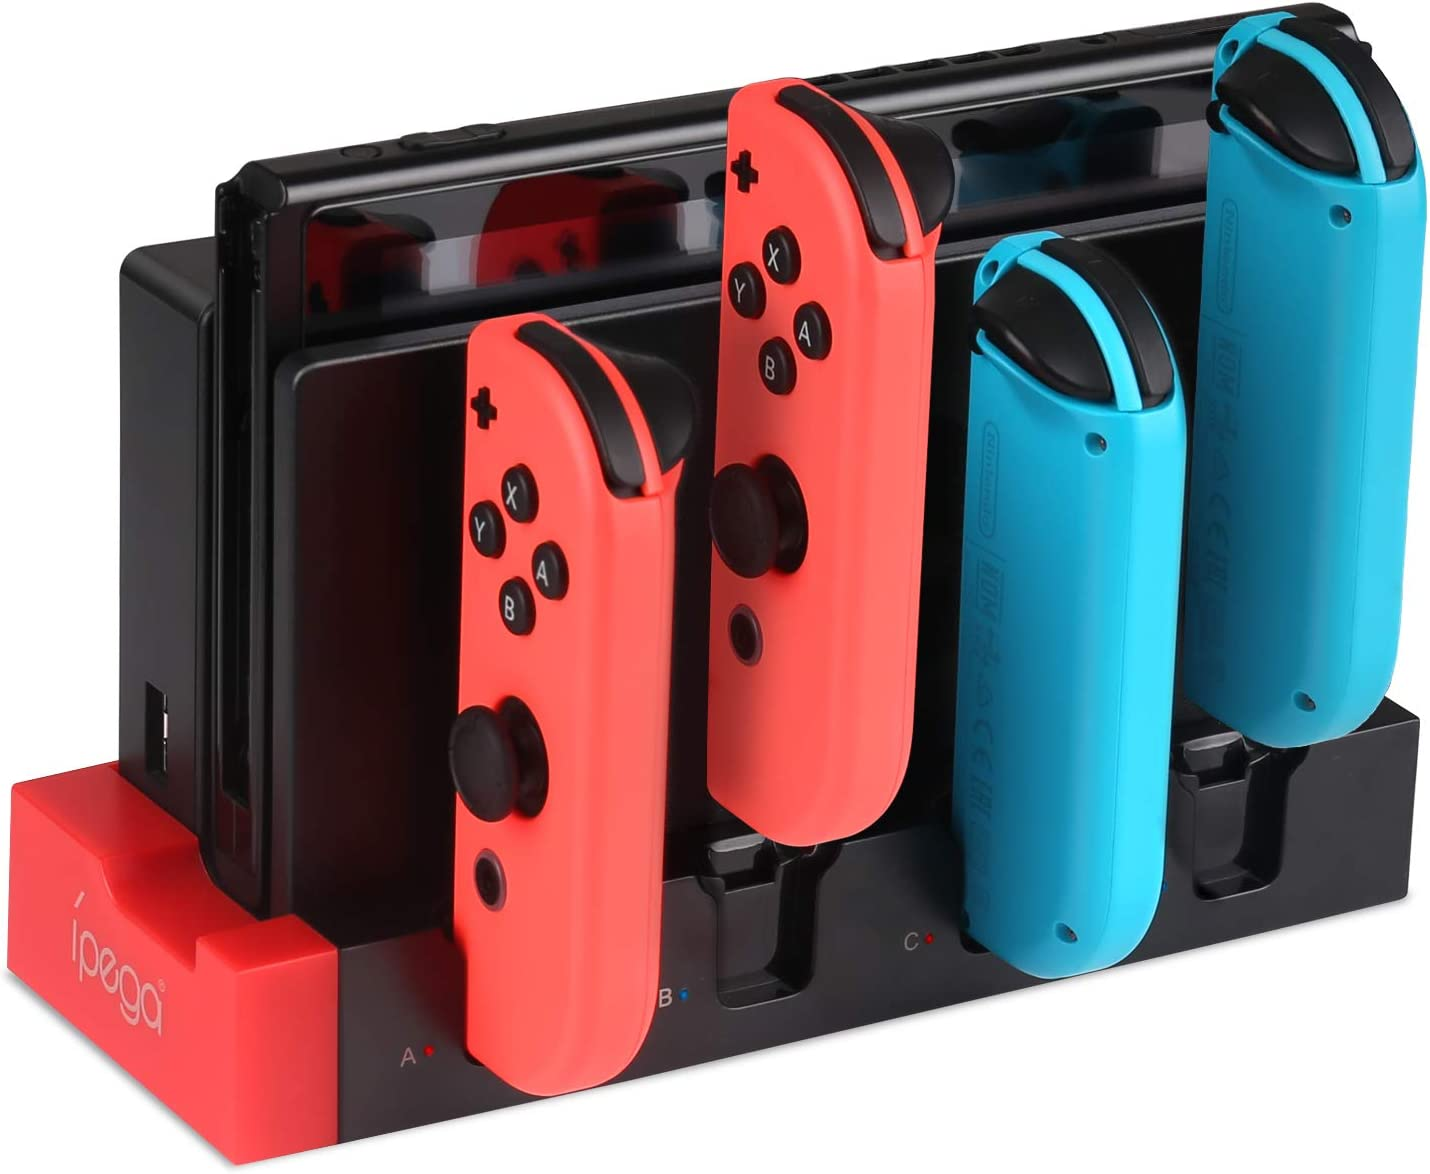 KINGTOP Charger for Nintendo Switch Joy-con, Controller Charging Dock Stand Charger Station Base for Switch Joy-con with Charging Indicator